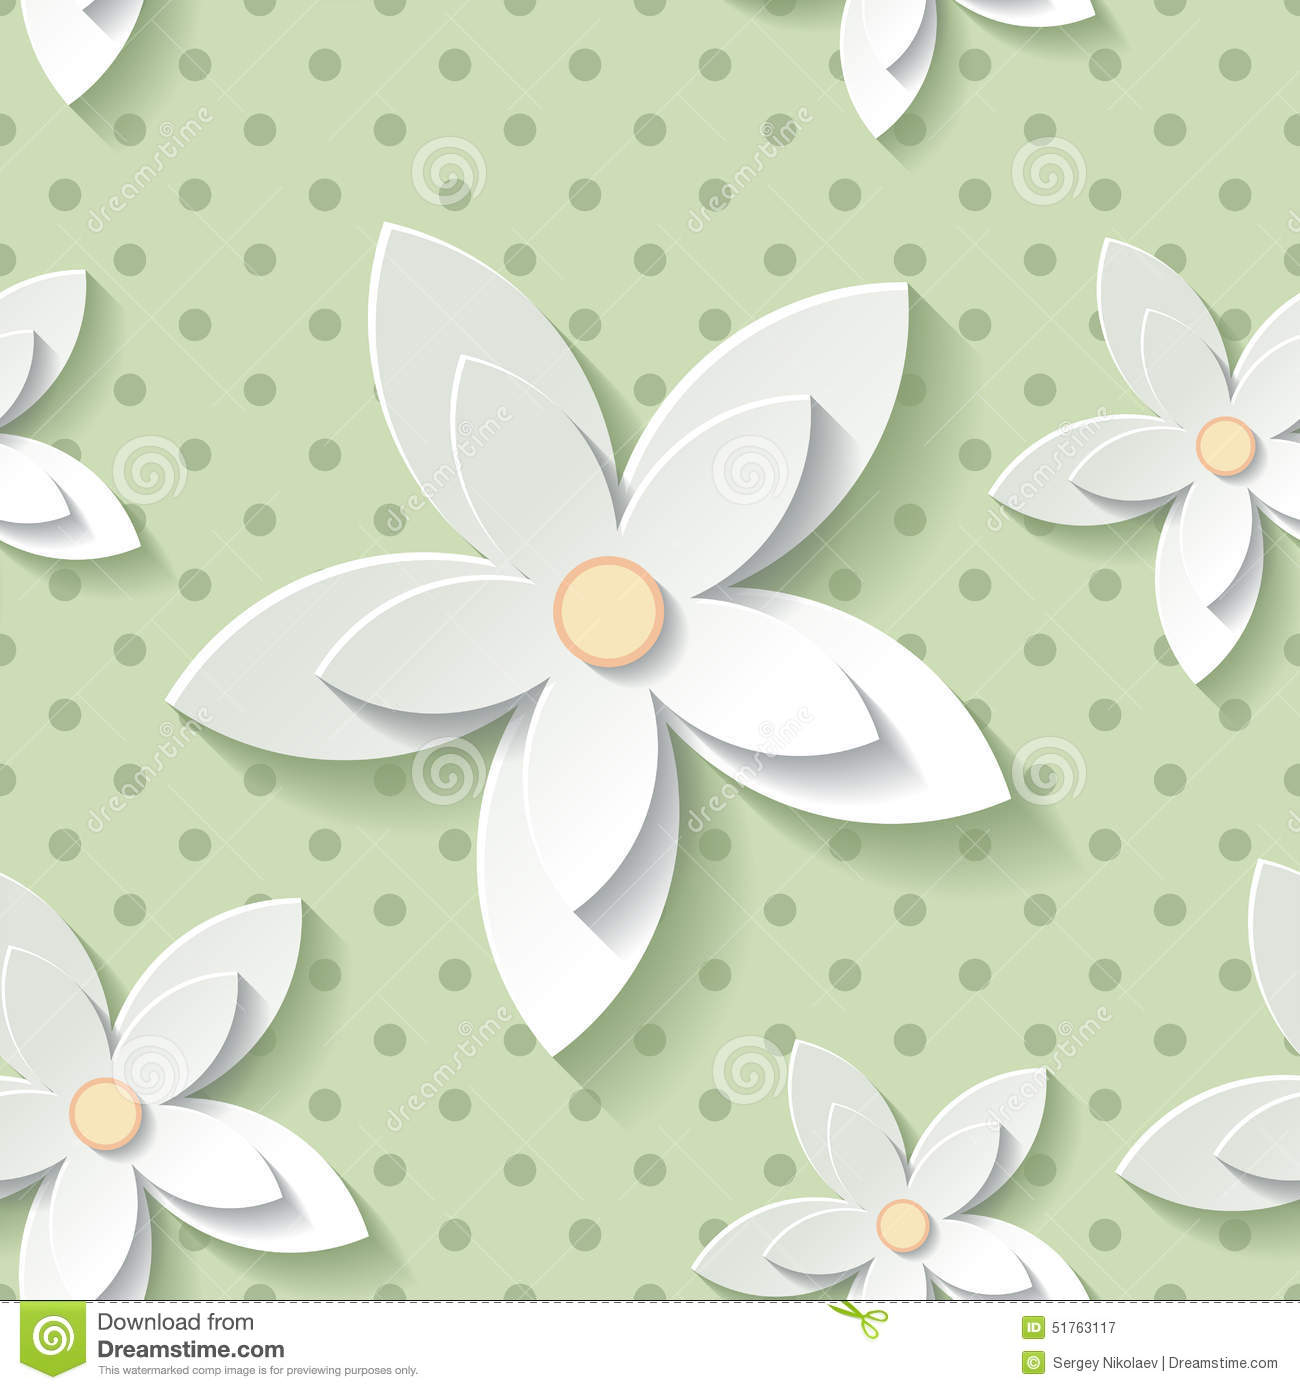 Bloemen modern behang vector illustratie illustratie for Modern behang